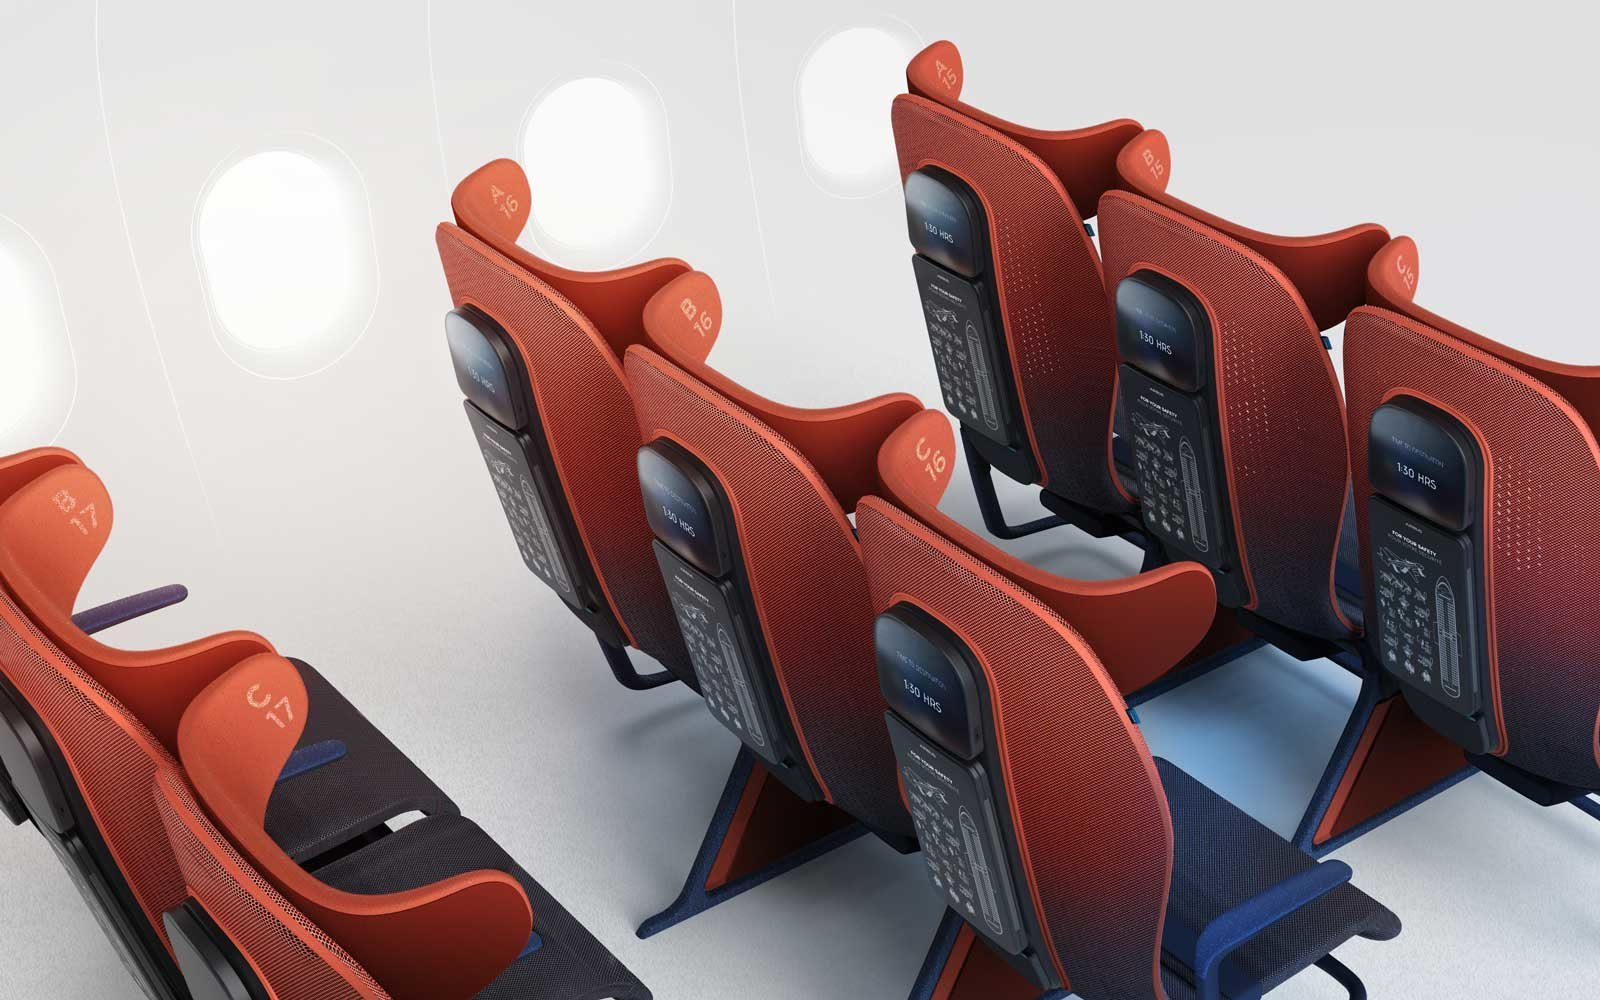 Why haven't we fixed the middle seat yet?